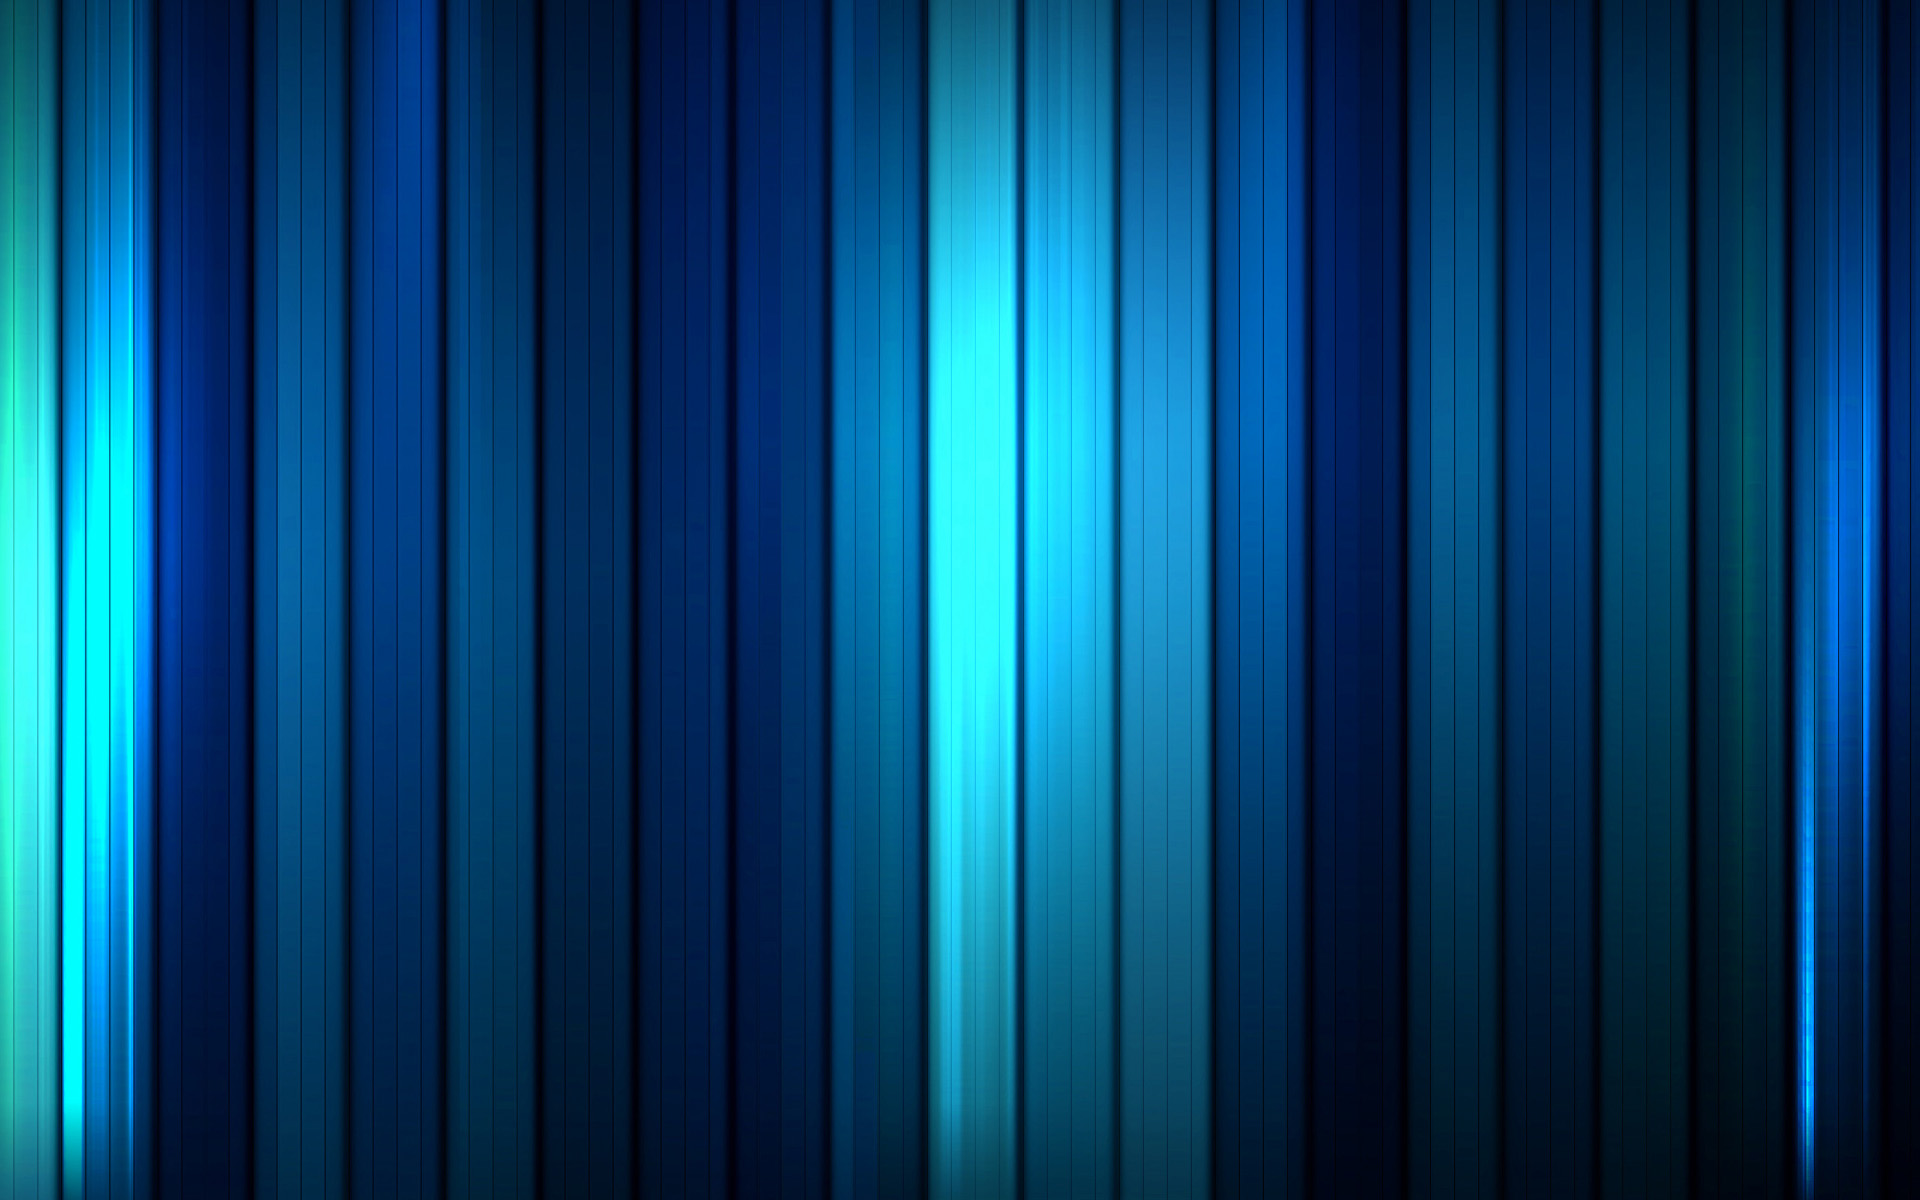 A collection of the most cool backgrounds, very rich of colors